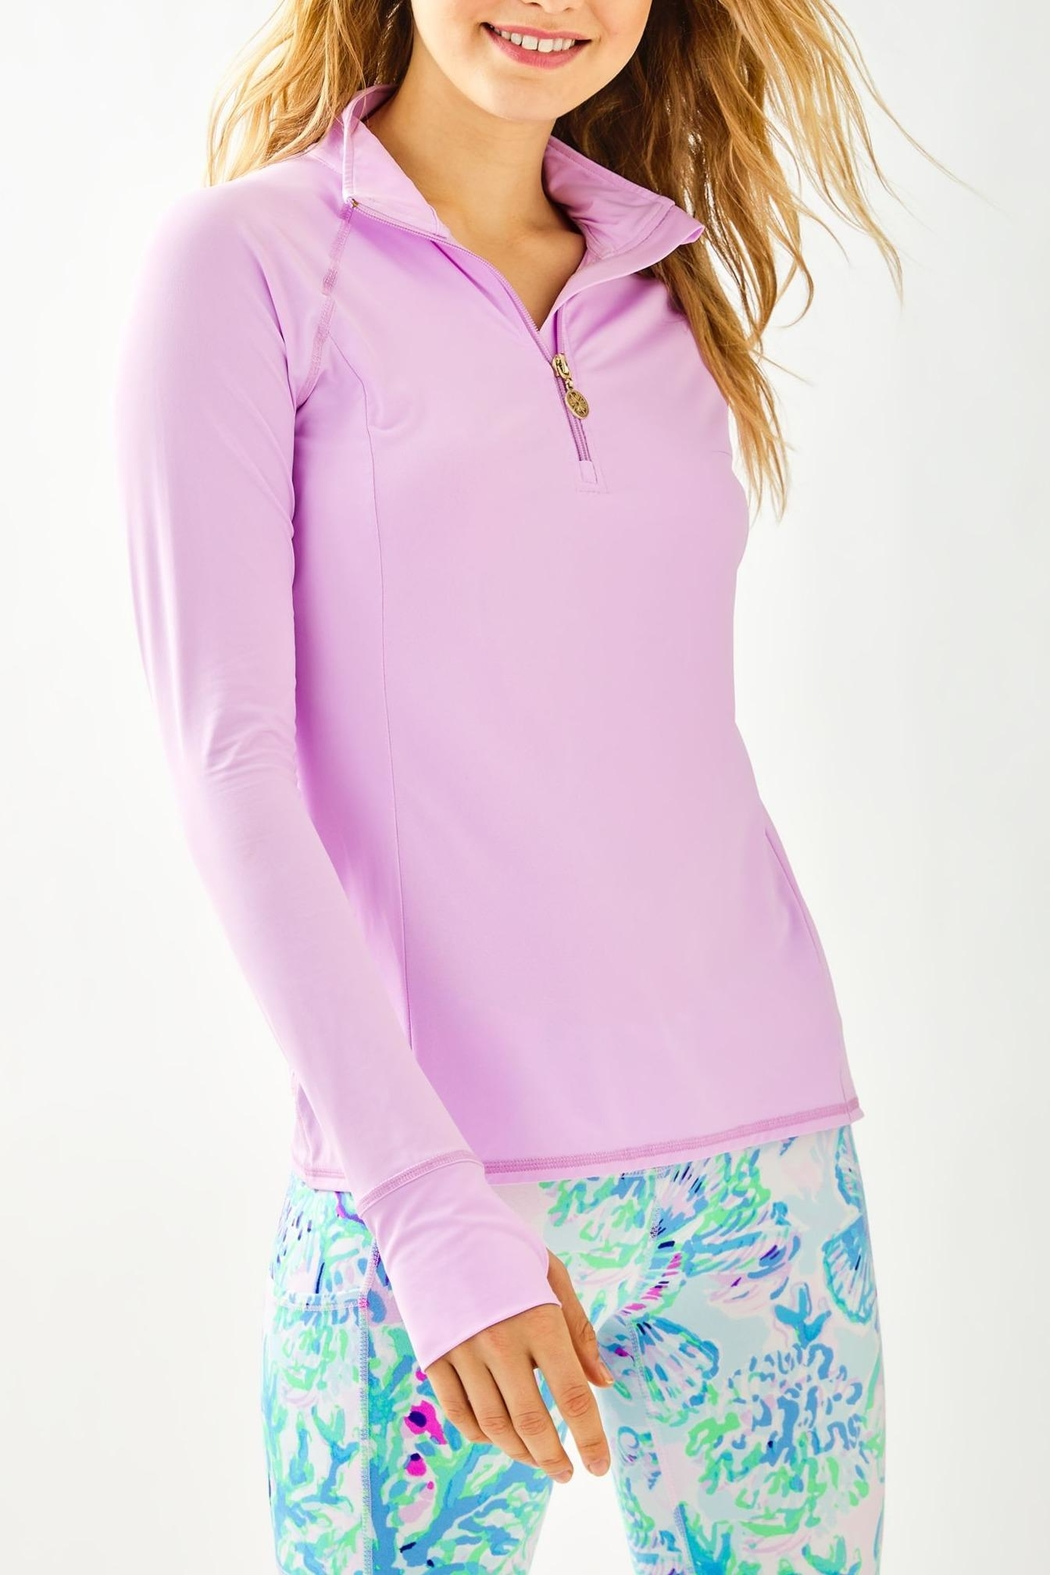 Lilly Pulitzer Luxletic Marion Popover - Main Image